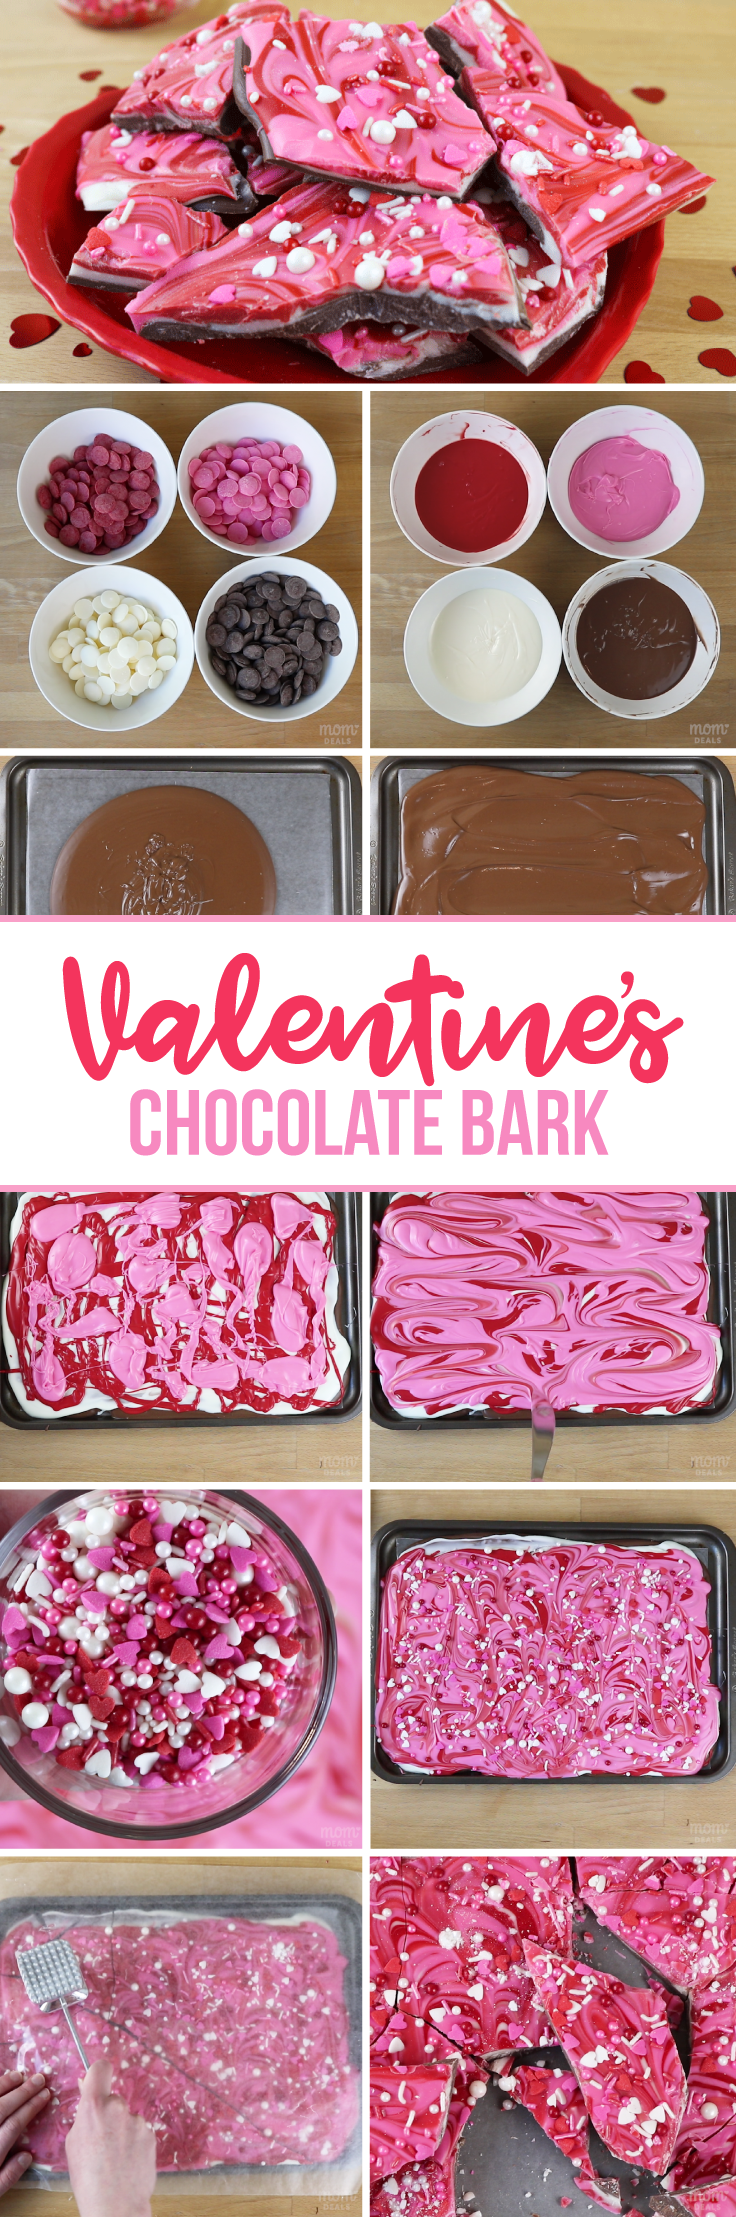 How to Make Valentine's Day Candy Bark (With Pictures & Video)